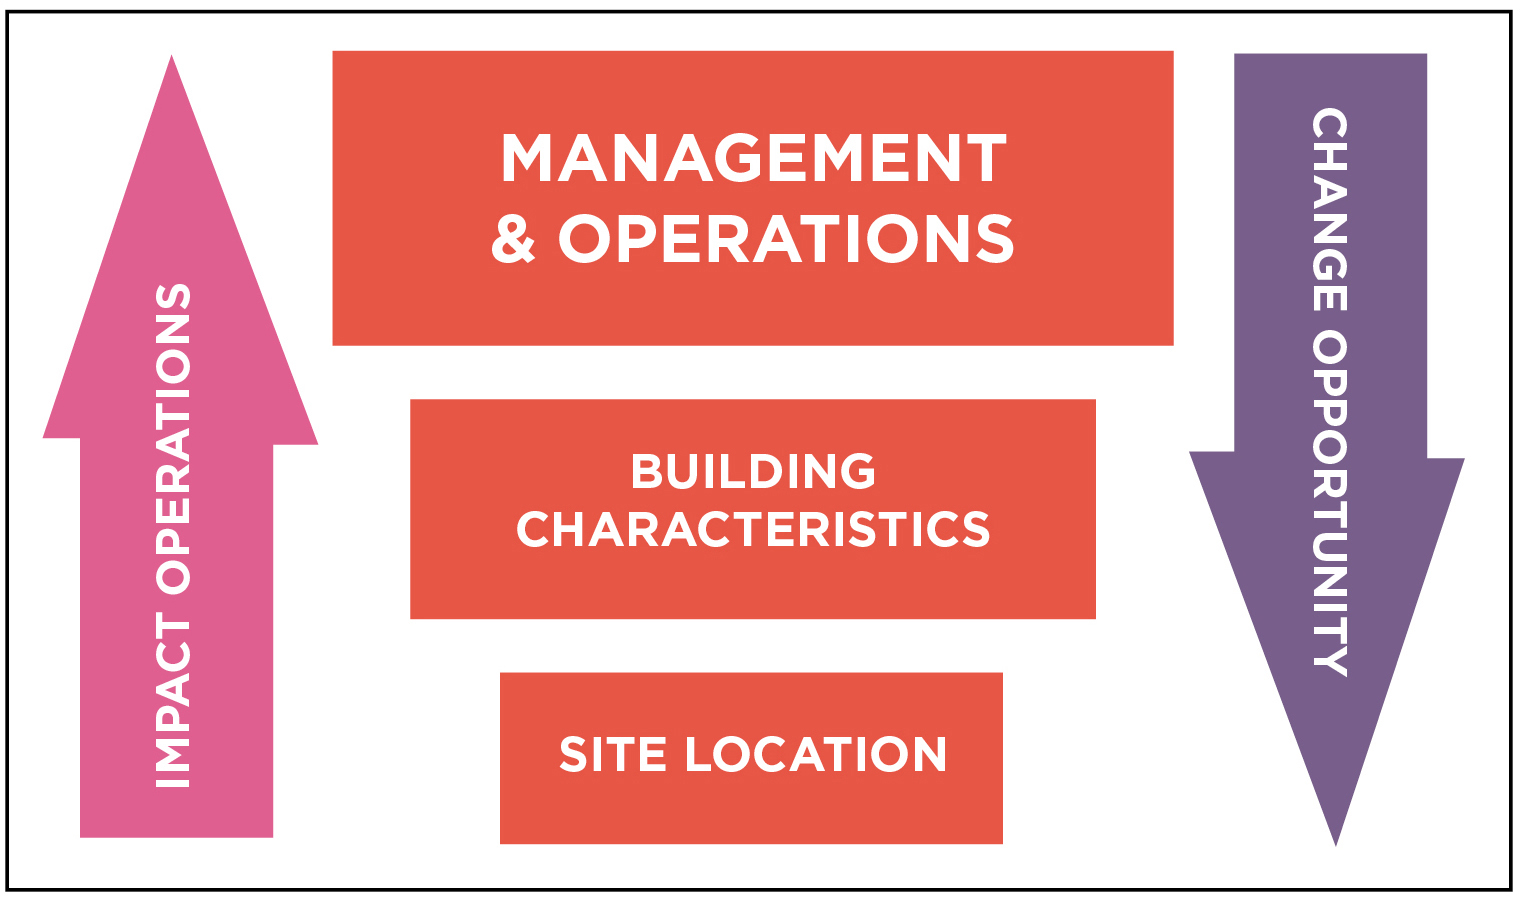 Figure 1. According to Tier Standard: Operational Sustainability, the three elements of Operational Sustainability are Management and Operations, Building Characteristics, and Site Location.